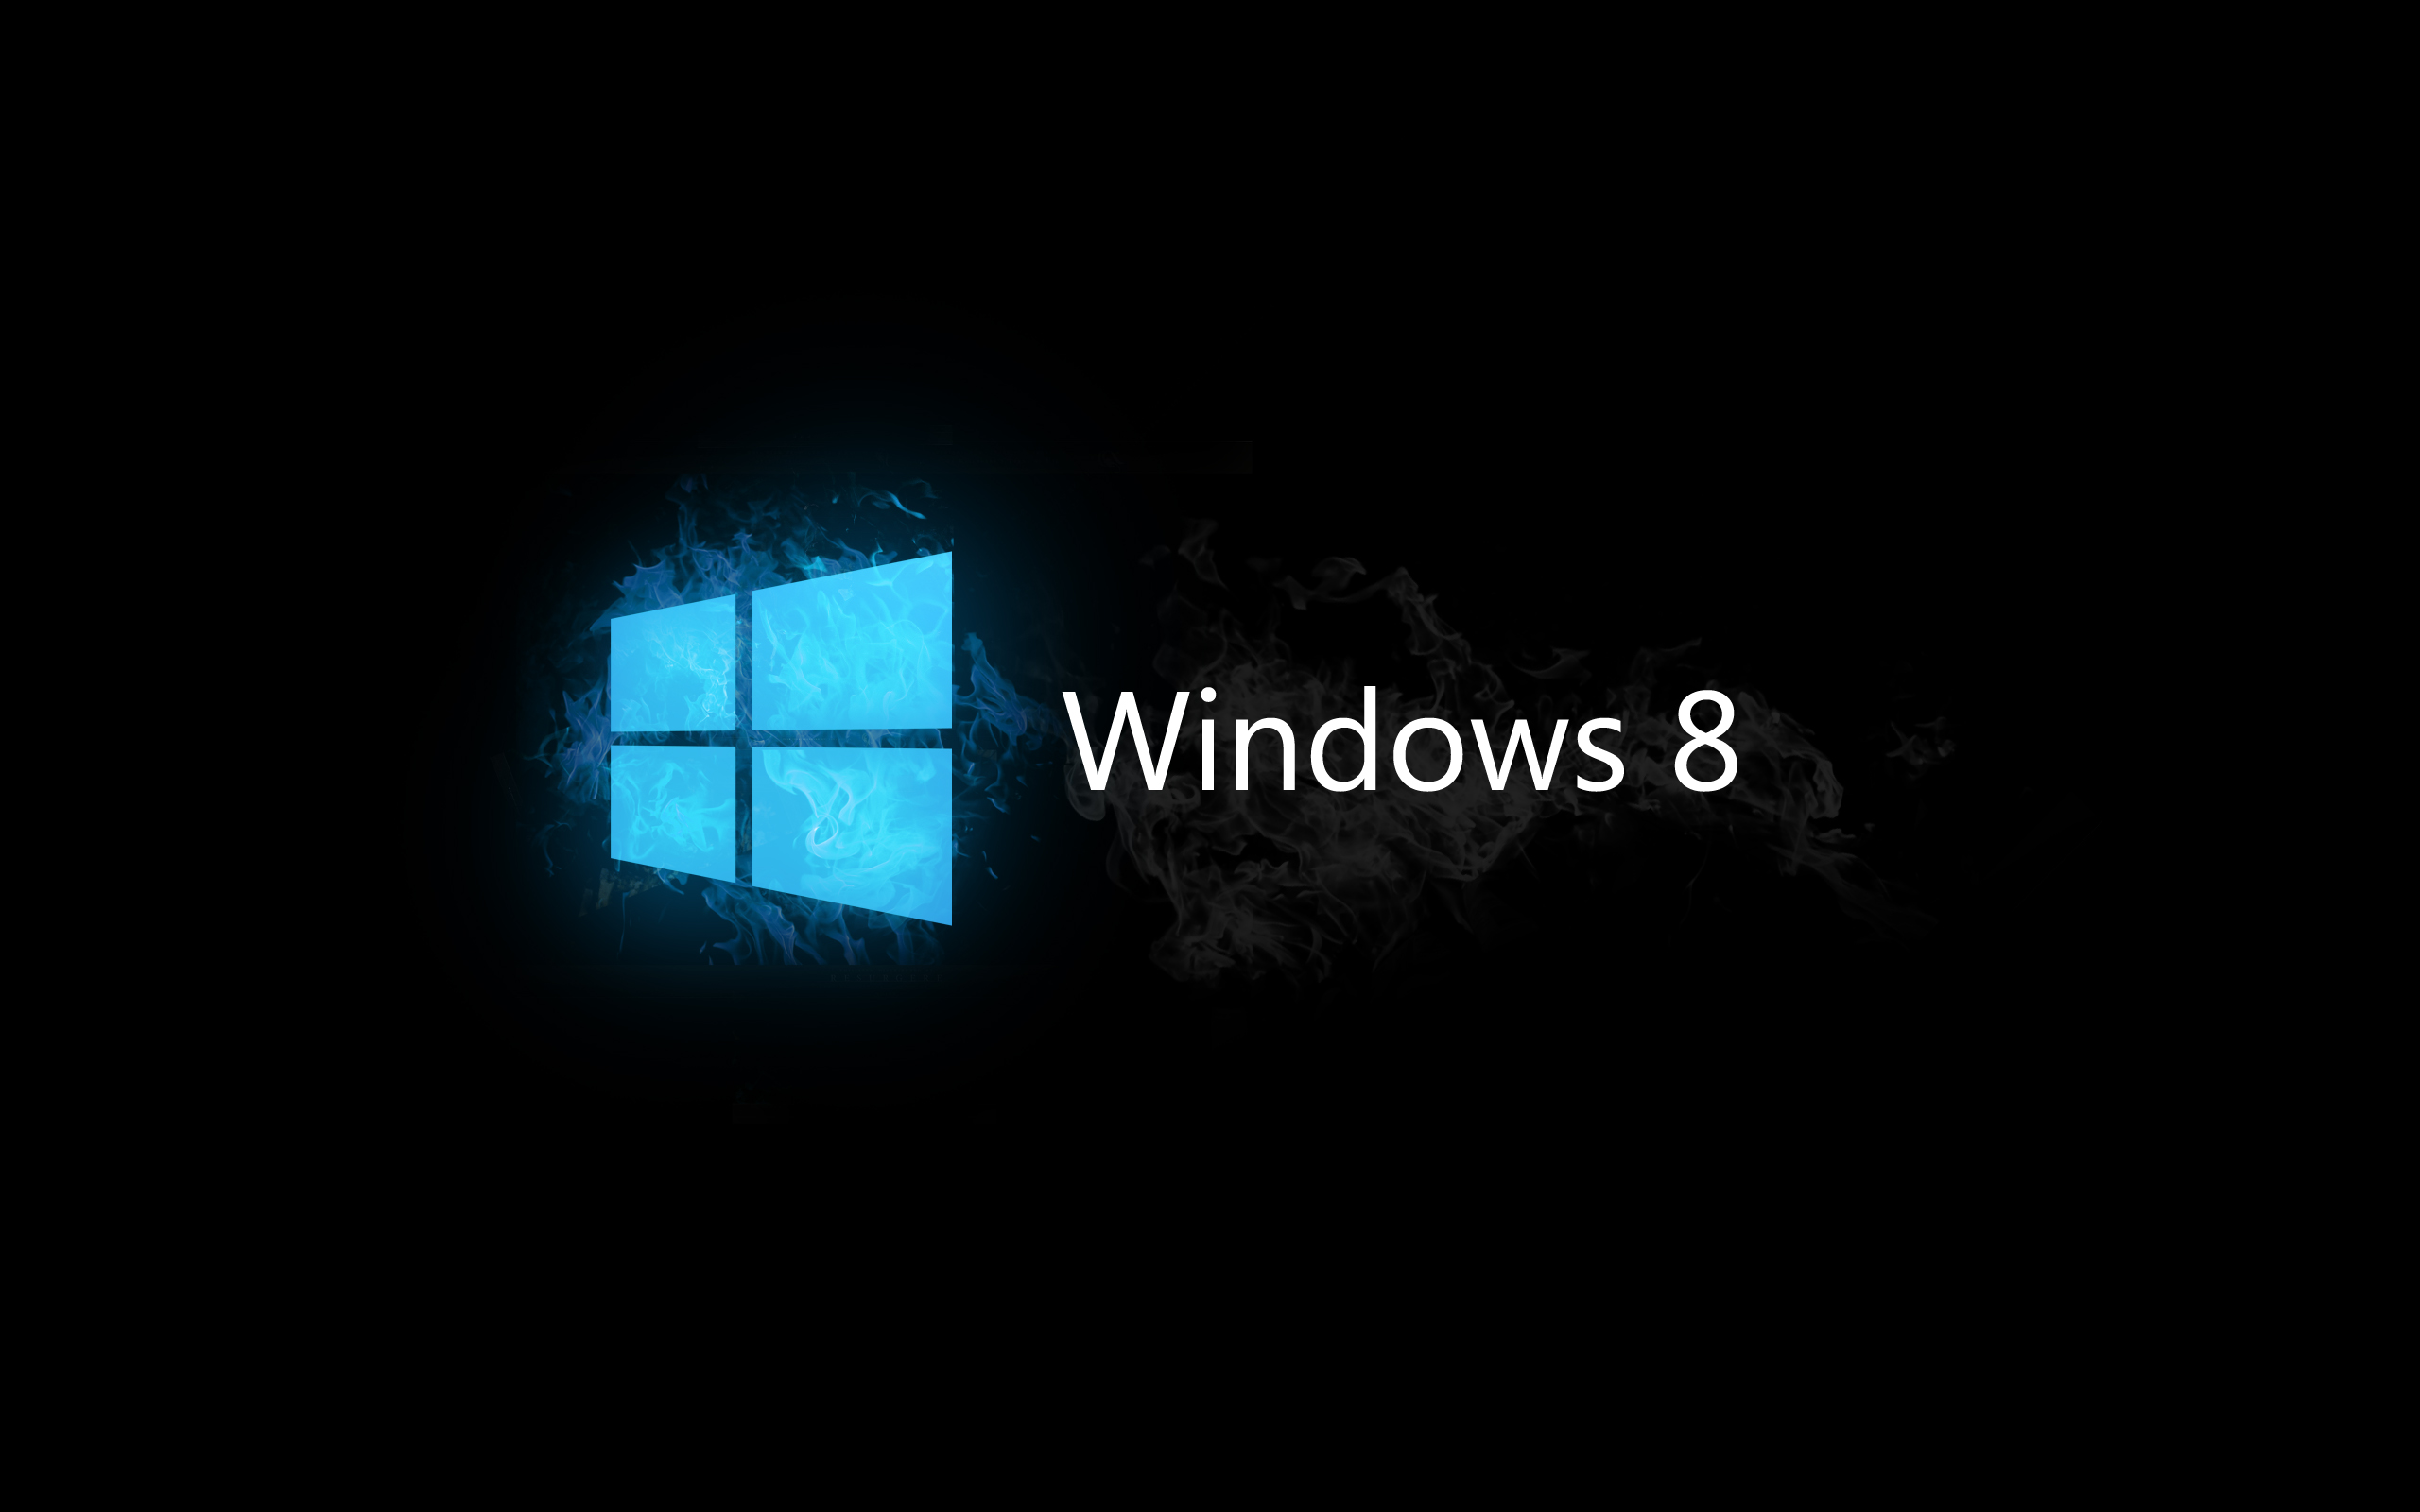 Simple Windows 8 Exclusive HD Wallpapers 5832 2560x1600